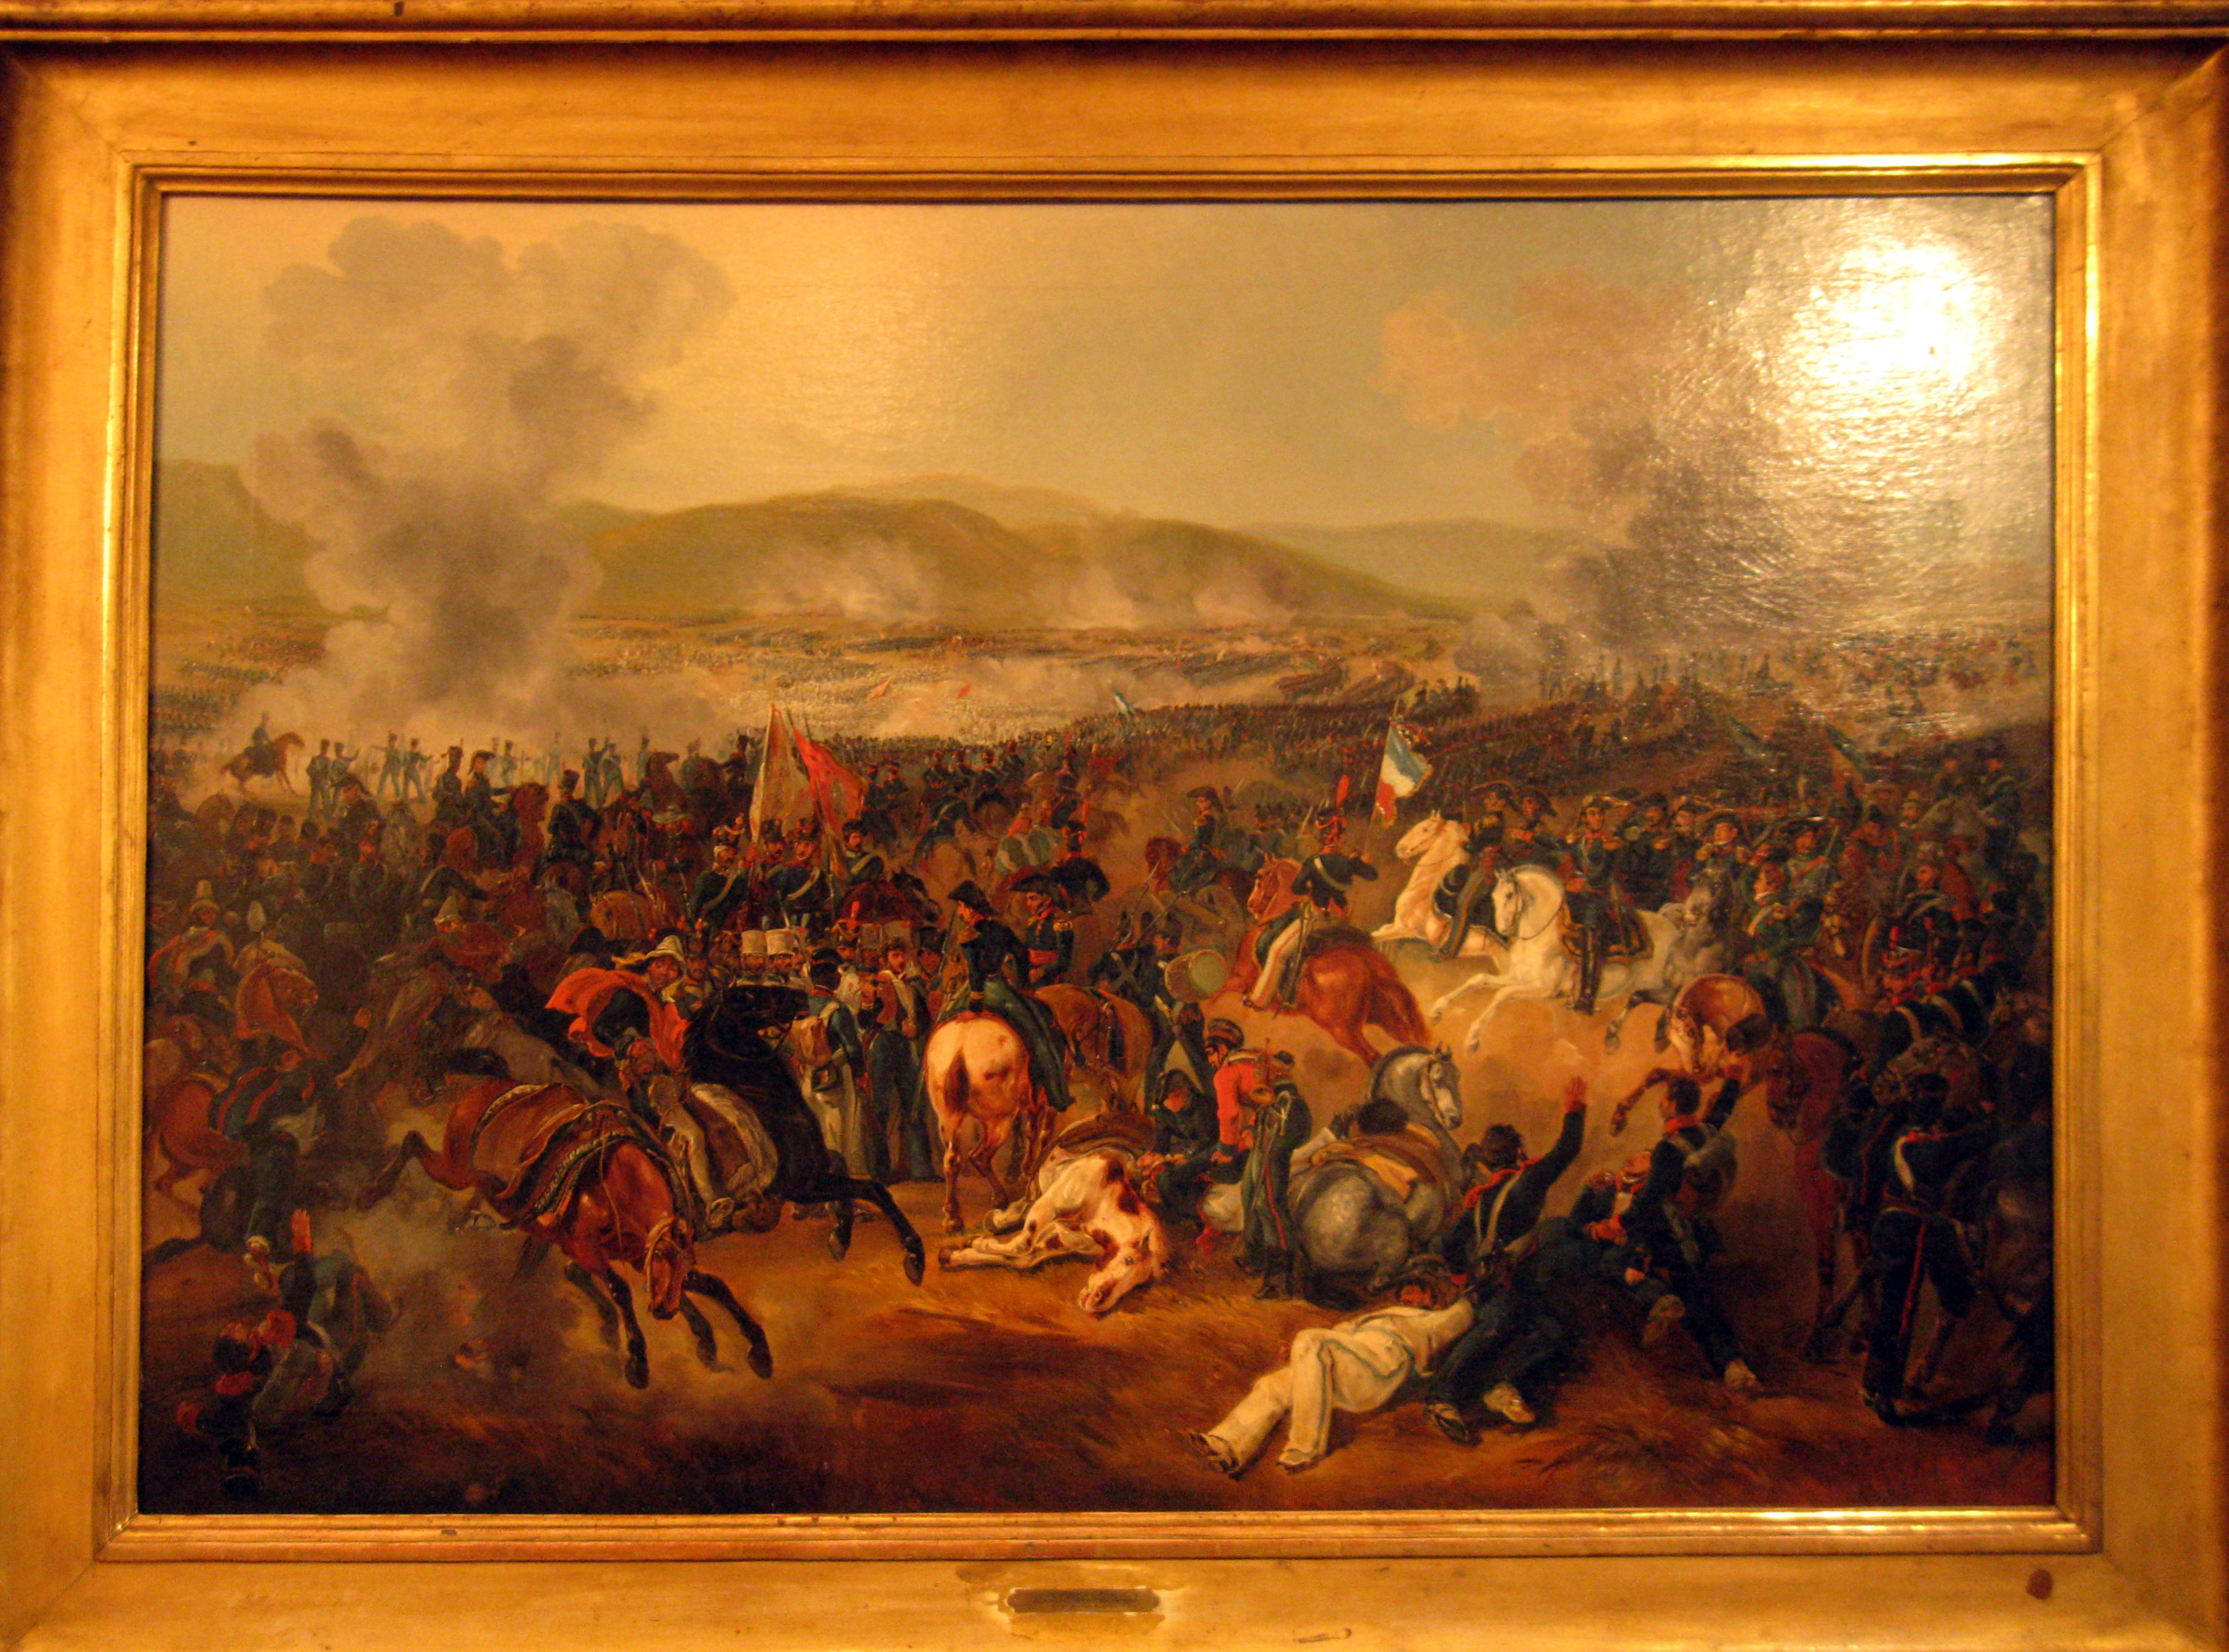 Battle of Maipú, painted by Johann Moritz Rugendas in 1837.